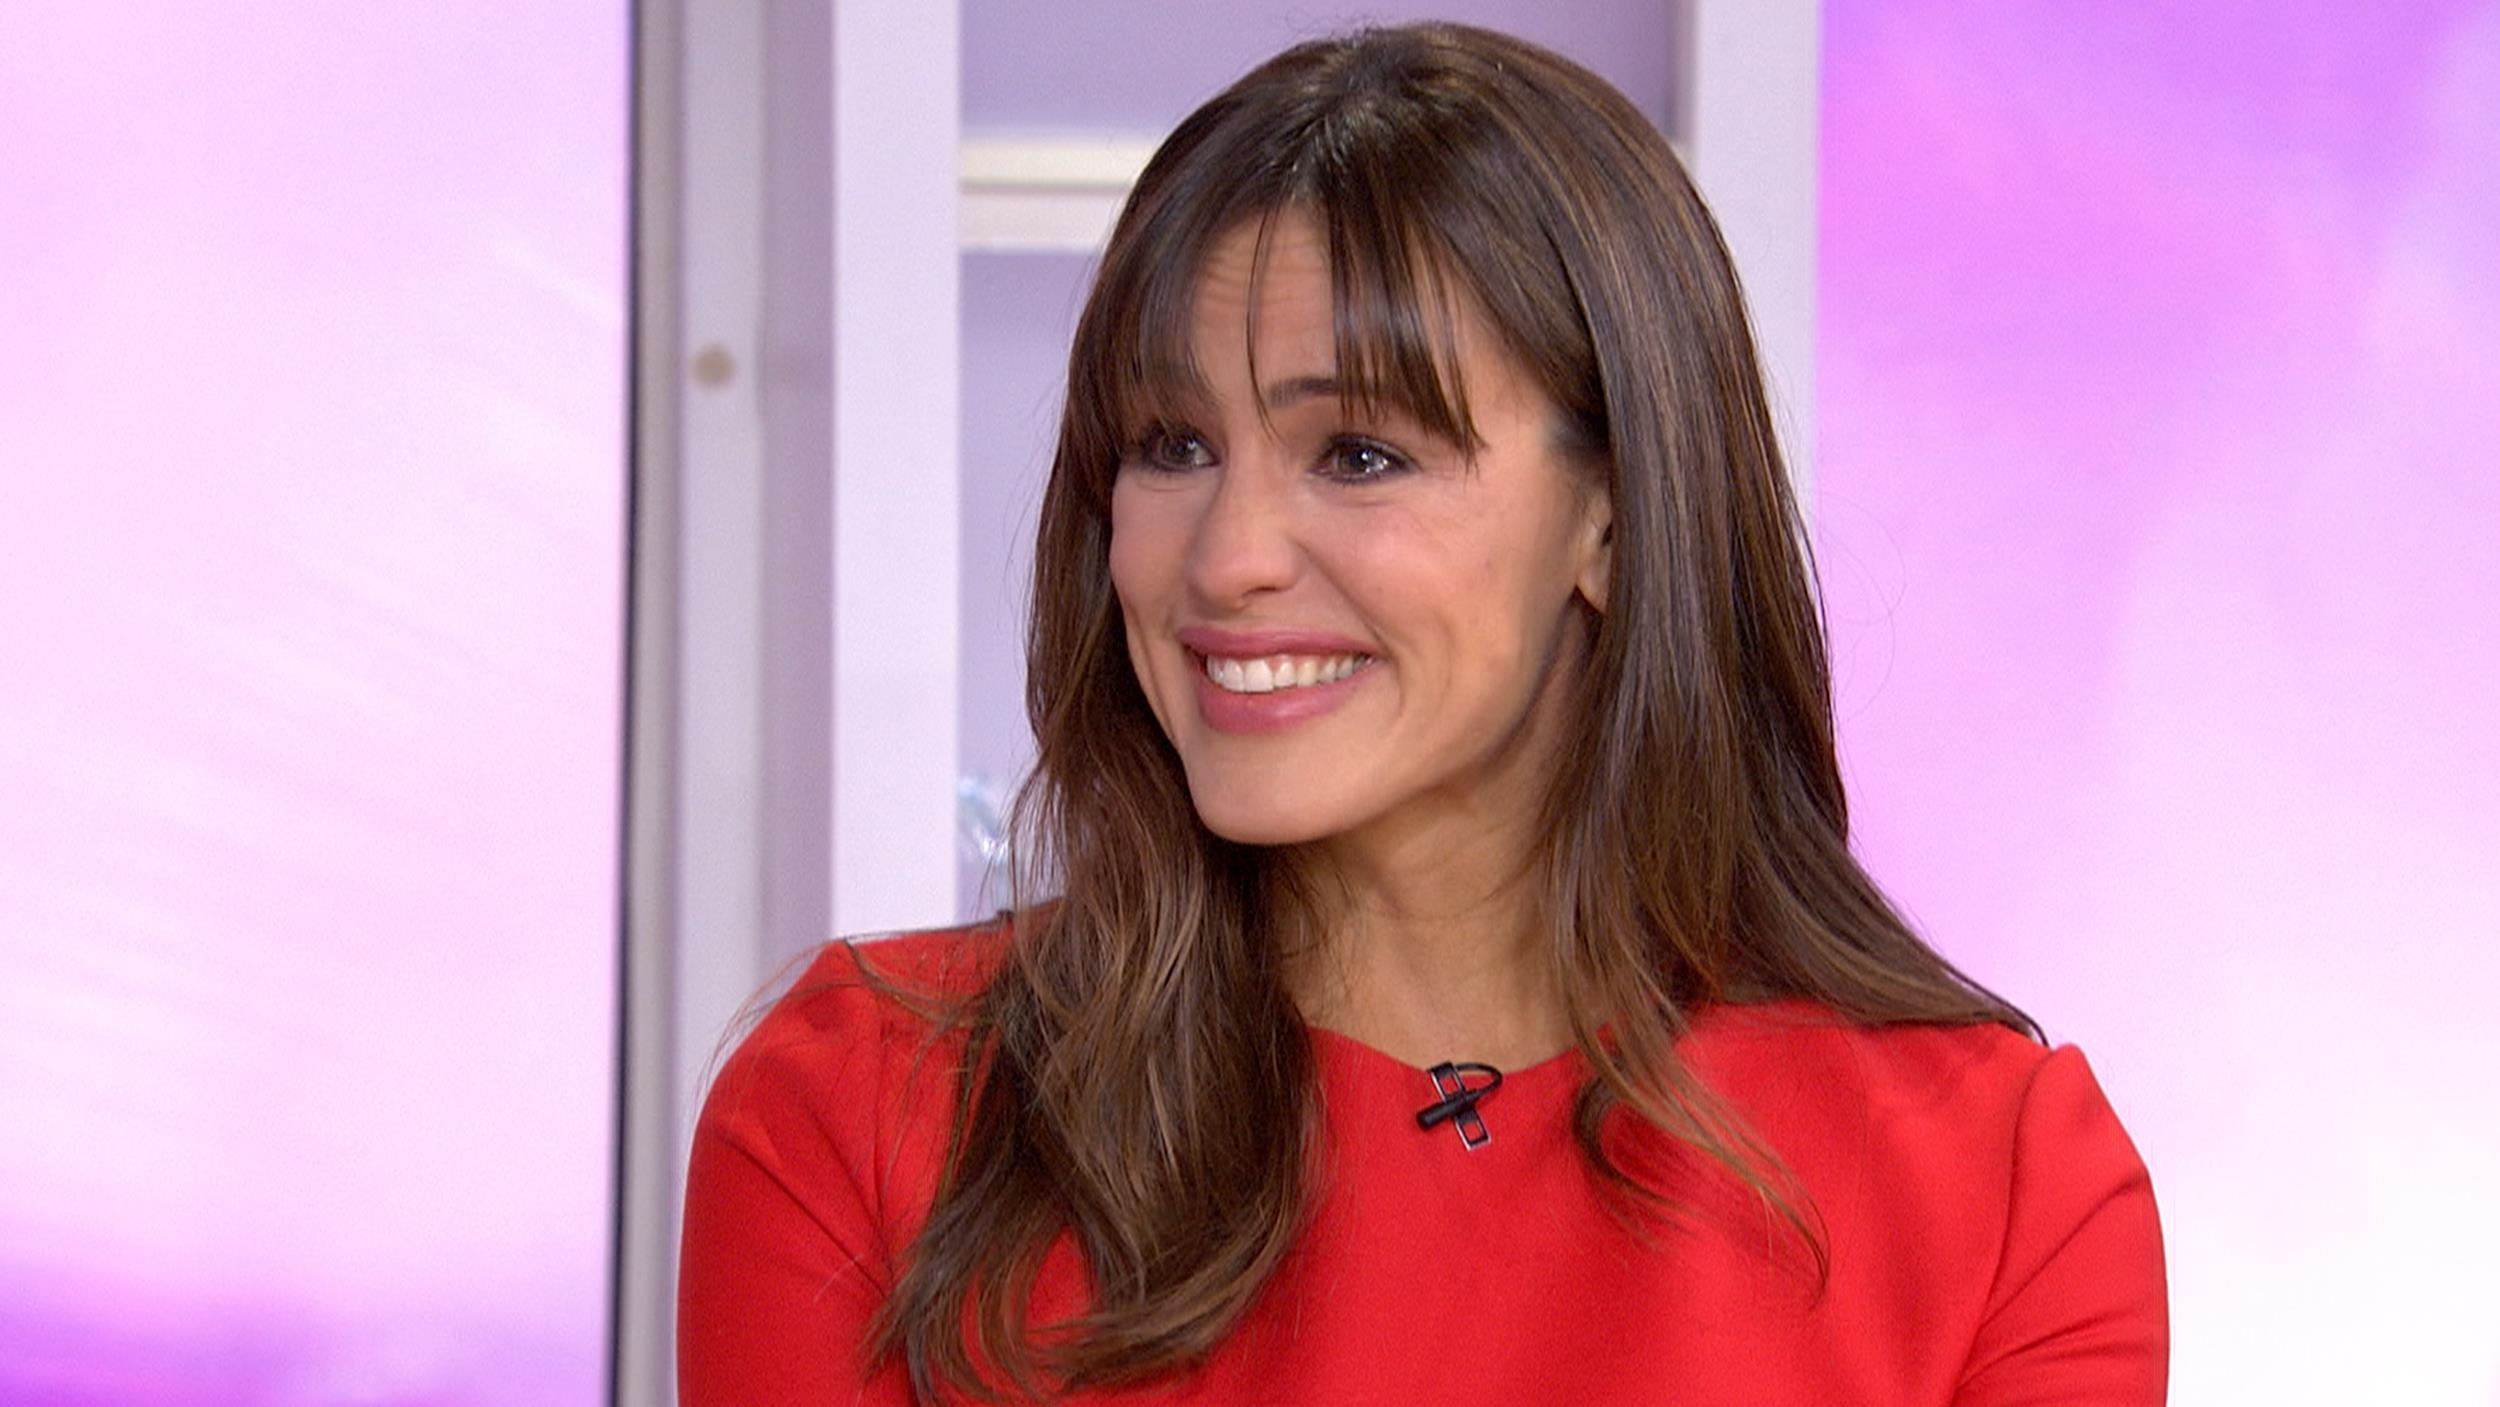 Jennifer garner cries when discussing mom sisters and more on today